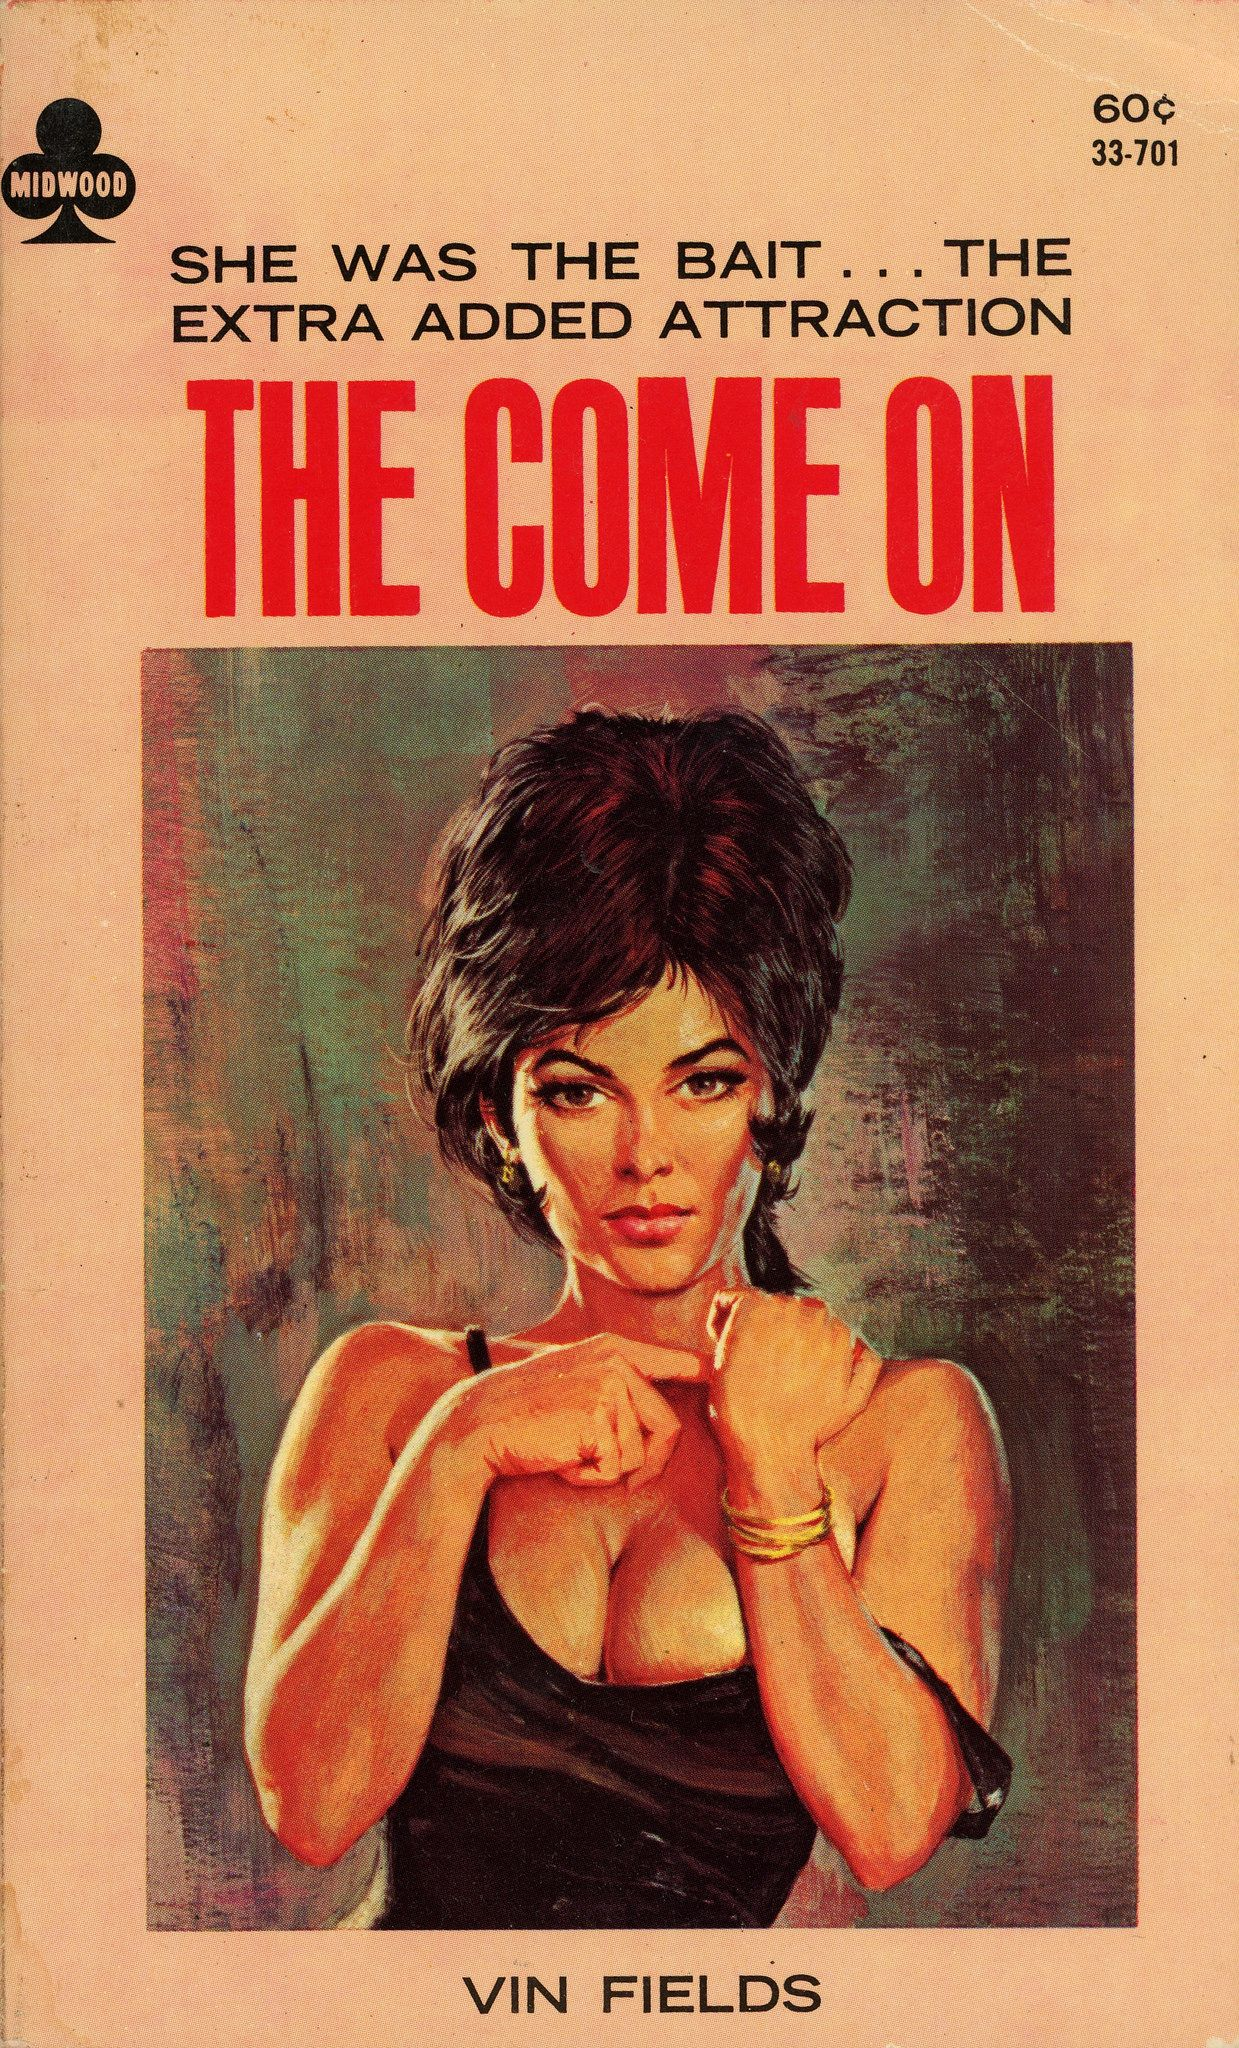 Midwood books 33701 the come on_1966_robert schulz book